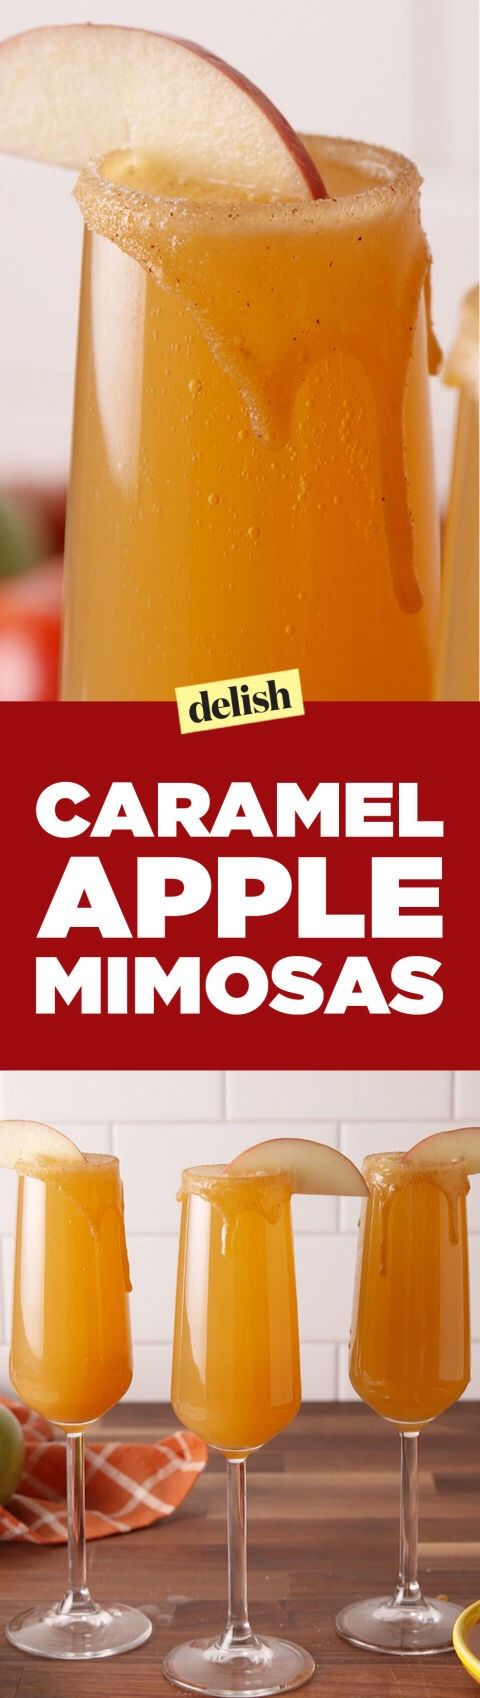 Caramel Apple MimosasINGREDIENTS   2 tbsp. Caramel   2 tbsp. cinnamon sugar   1 c. apple cider   8 oz. caramel vodka   1 bottle champagne   Apple slices, for garnishDirections  1. In a small dish, pour caramel sauce. In another small dish, pour cinnamon sugar. Dip champagne flutes into caramel to rim glass, then dip in cinnamon sugar.  2. Pour apple cider, caramel vodka, and top with champagne into flutes.  3. Garnish with an apple slice and serve.